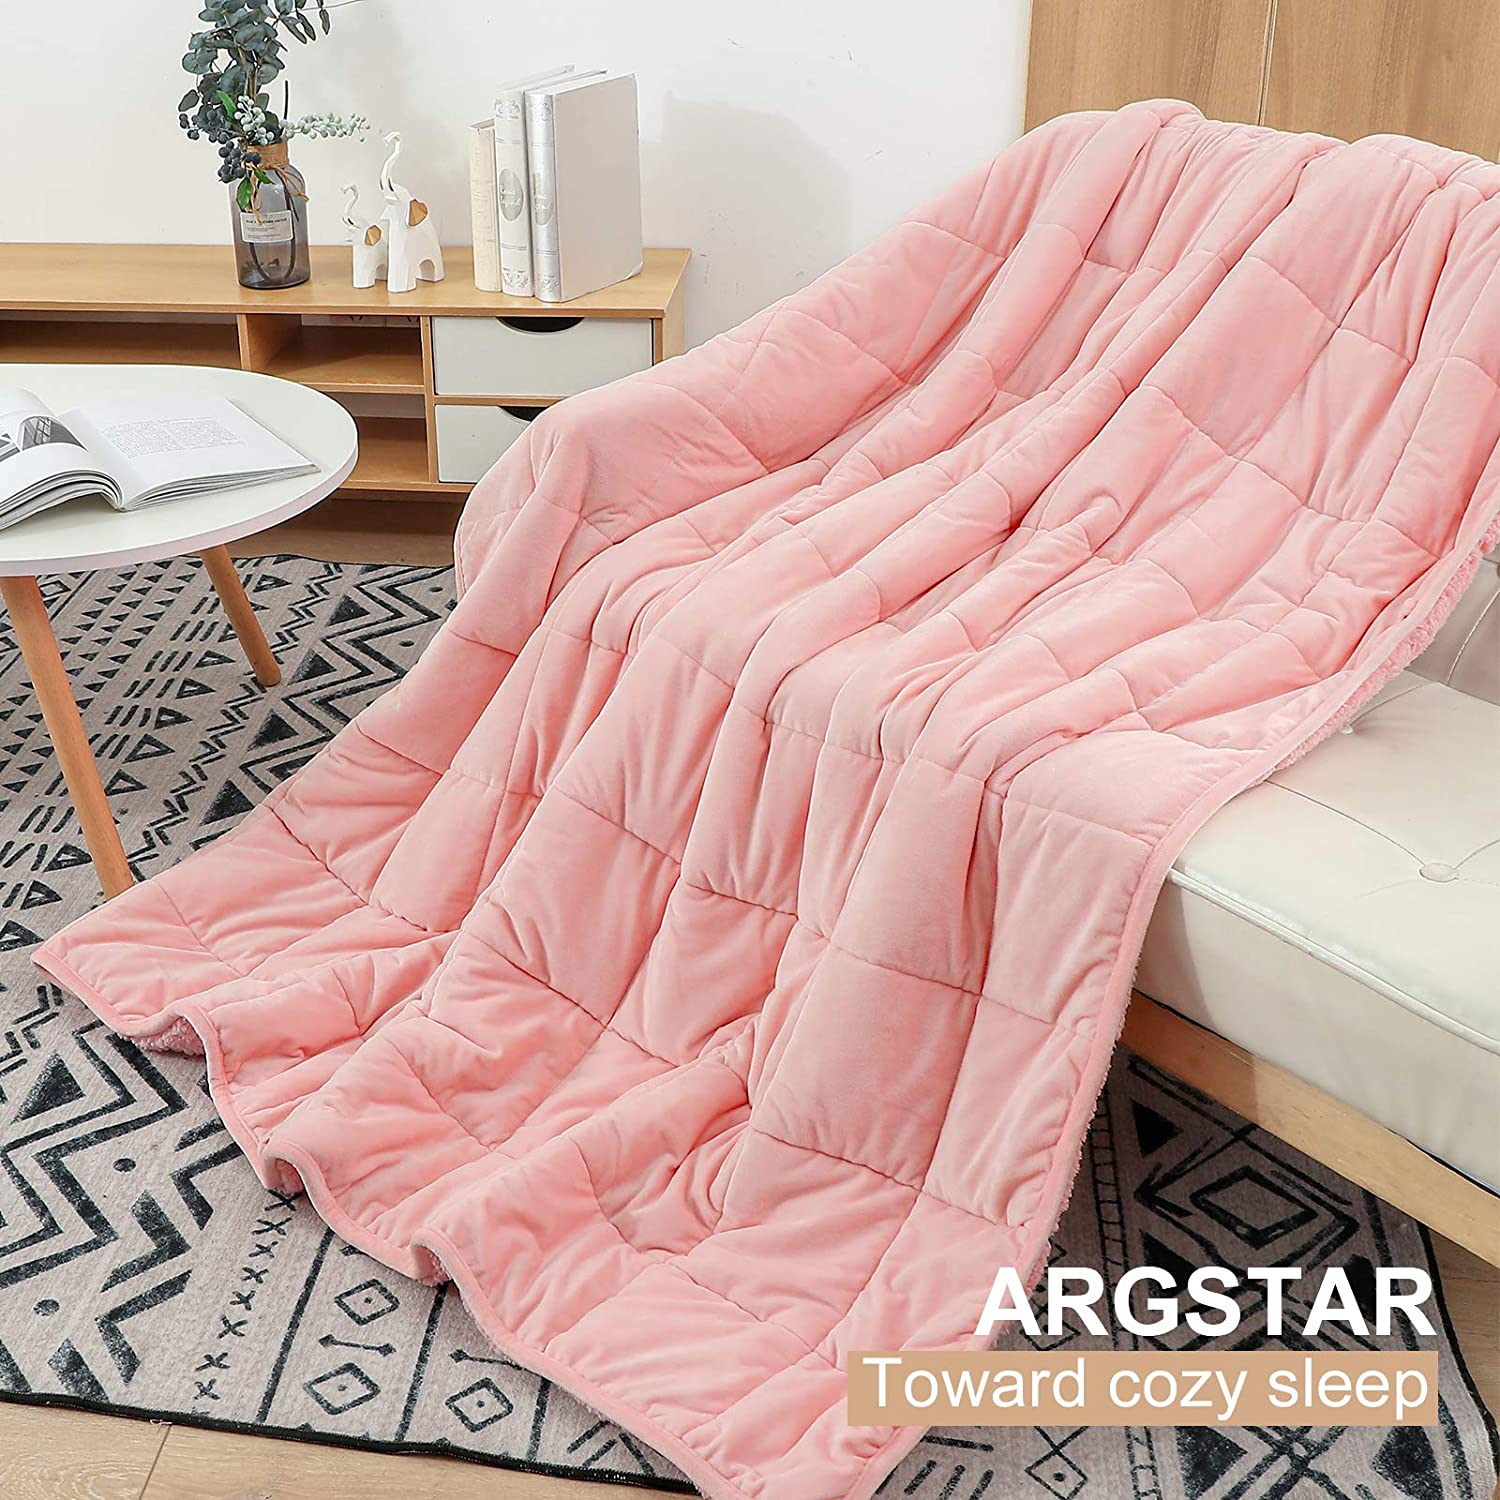 Argstar Sherpa Fleece Weighted Blanket for Kid 7 Lbs On Bed//Sofa//Travel 41x60 Pink. Soft Cozy Fuzzy Heavy Blankets with Premium Glass Beads